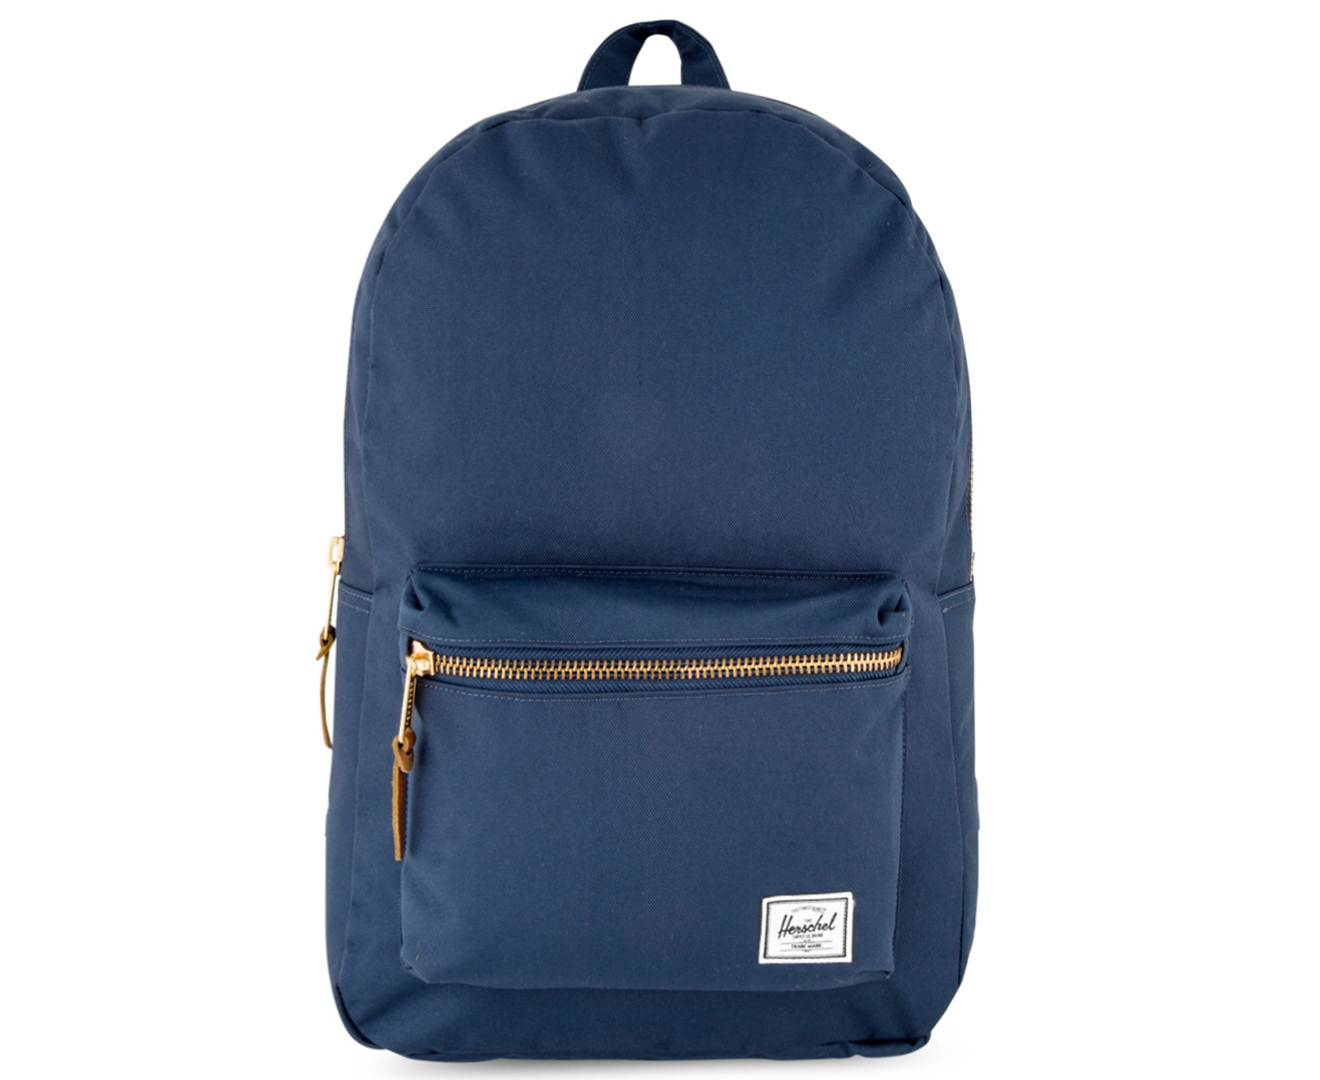 Supply Settlement 828432005277 Co Backpack Ebay Navy 23l Herschel wBvdtw